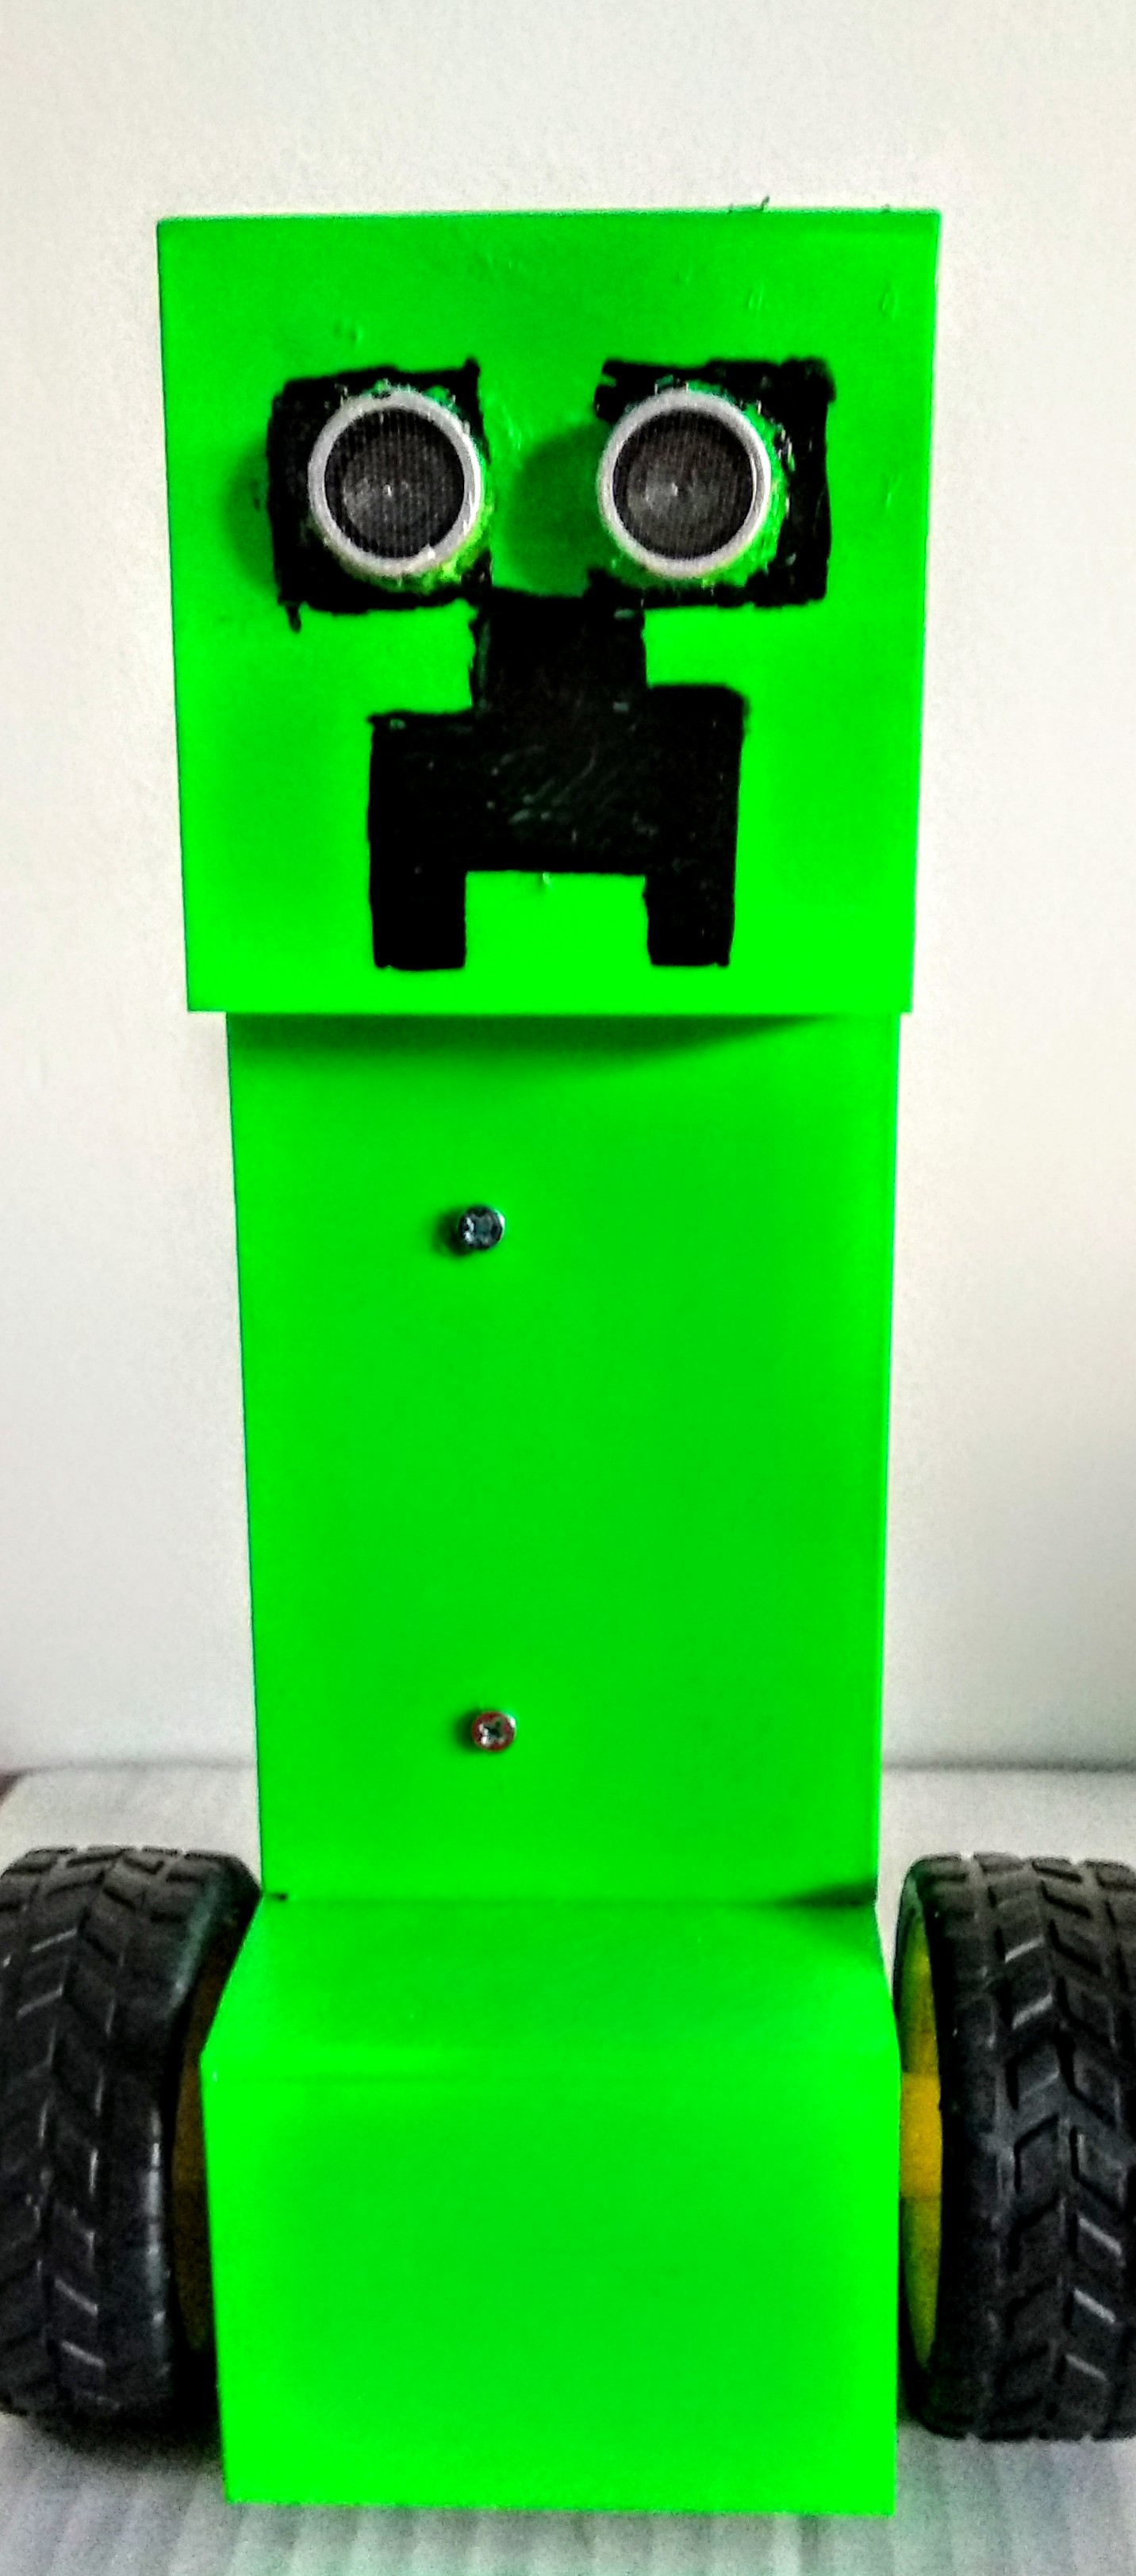 Picture of Obstacle-Avoiding Minecraft Creeper Robot